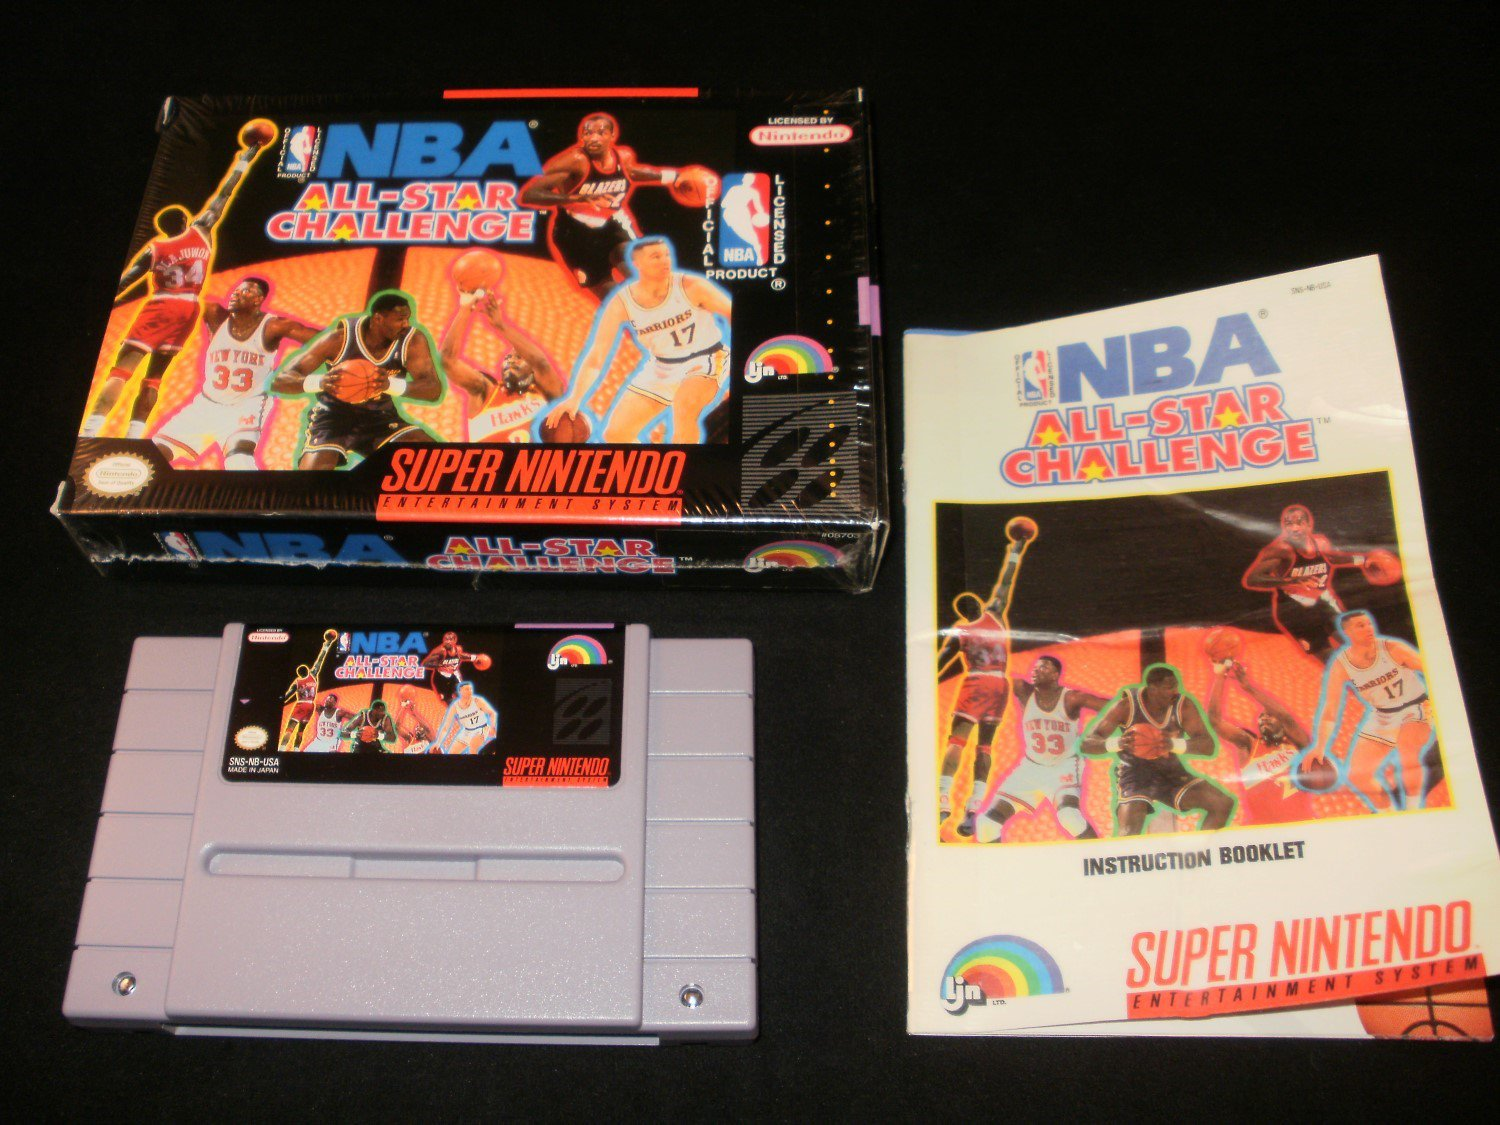 73eb4a59607 NBA All-Star Challenge - SNES Super Nintendo - Complete CIB